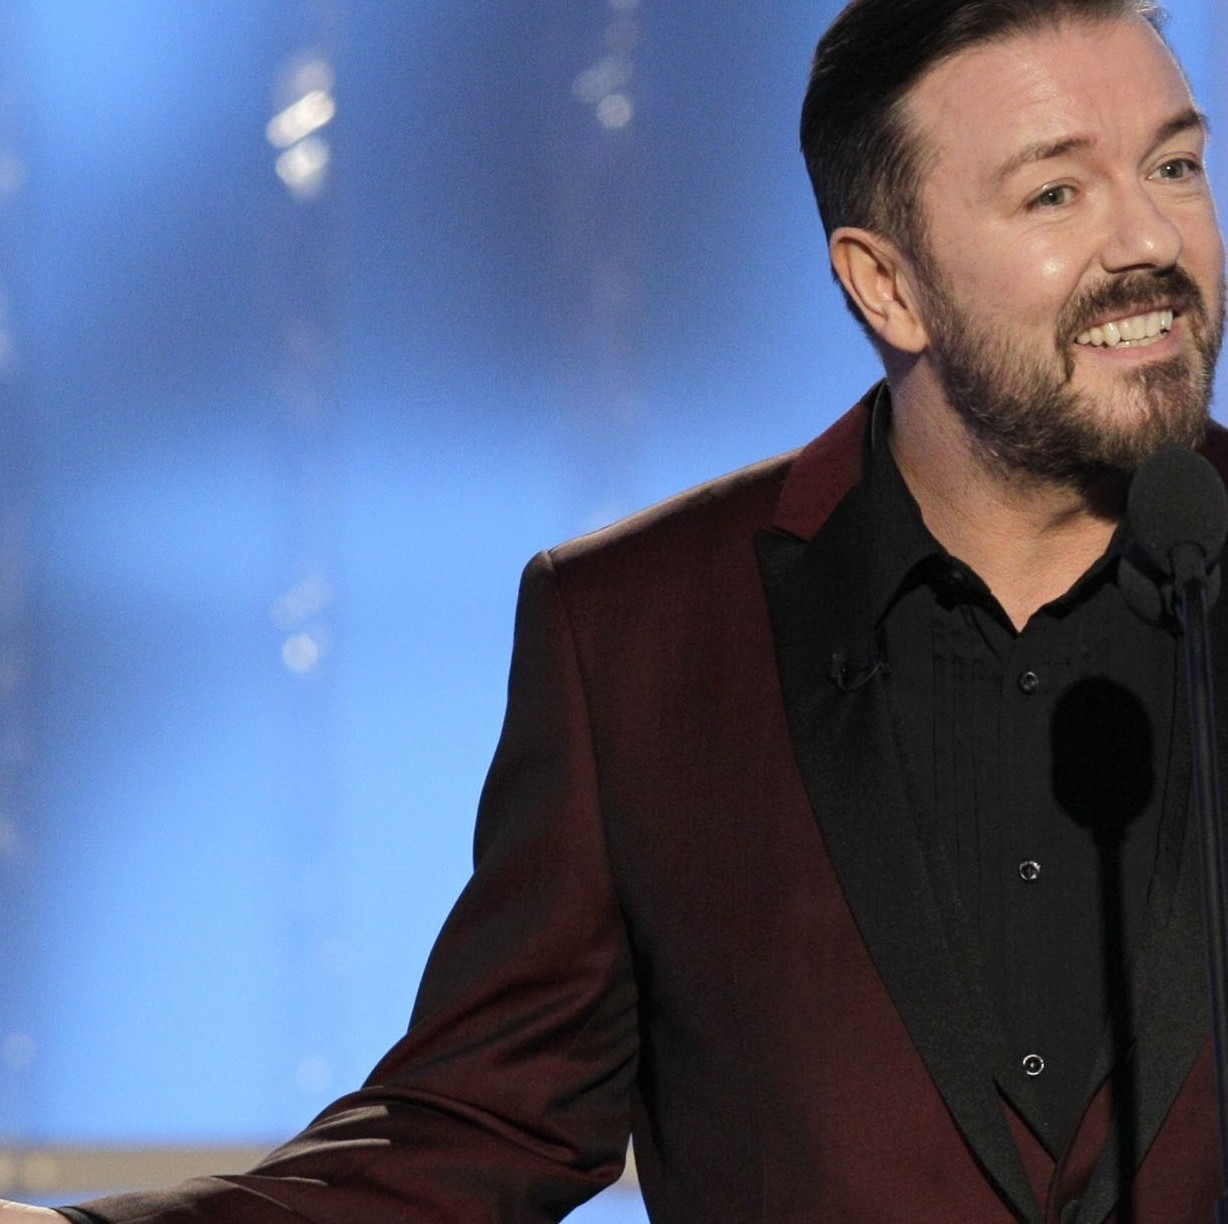 Ricky Gervais makes a joke about Caitlyn Jenner. (Photo: Paul Drinkwater/NBC via Getty Images)